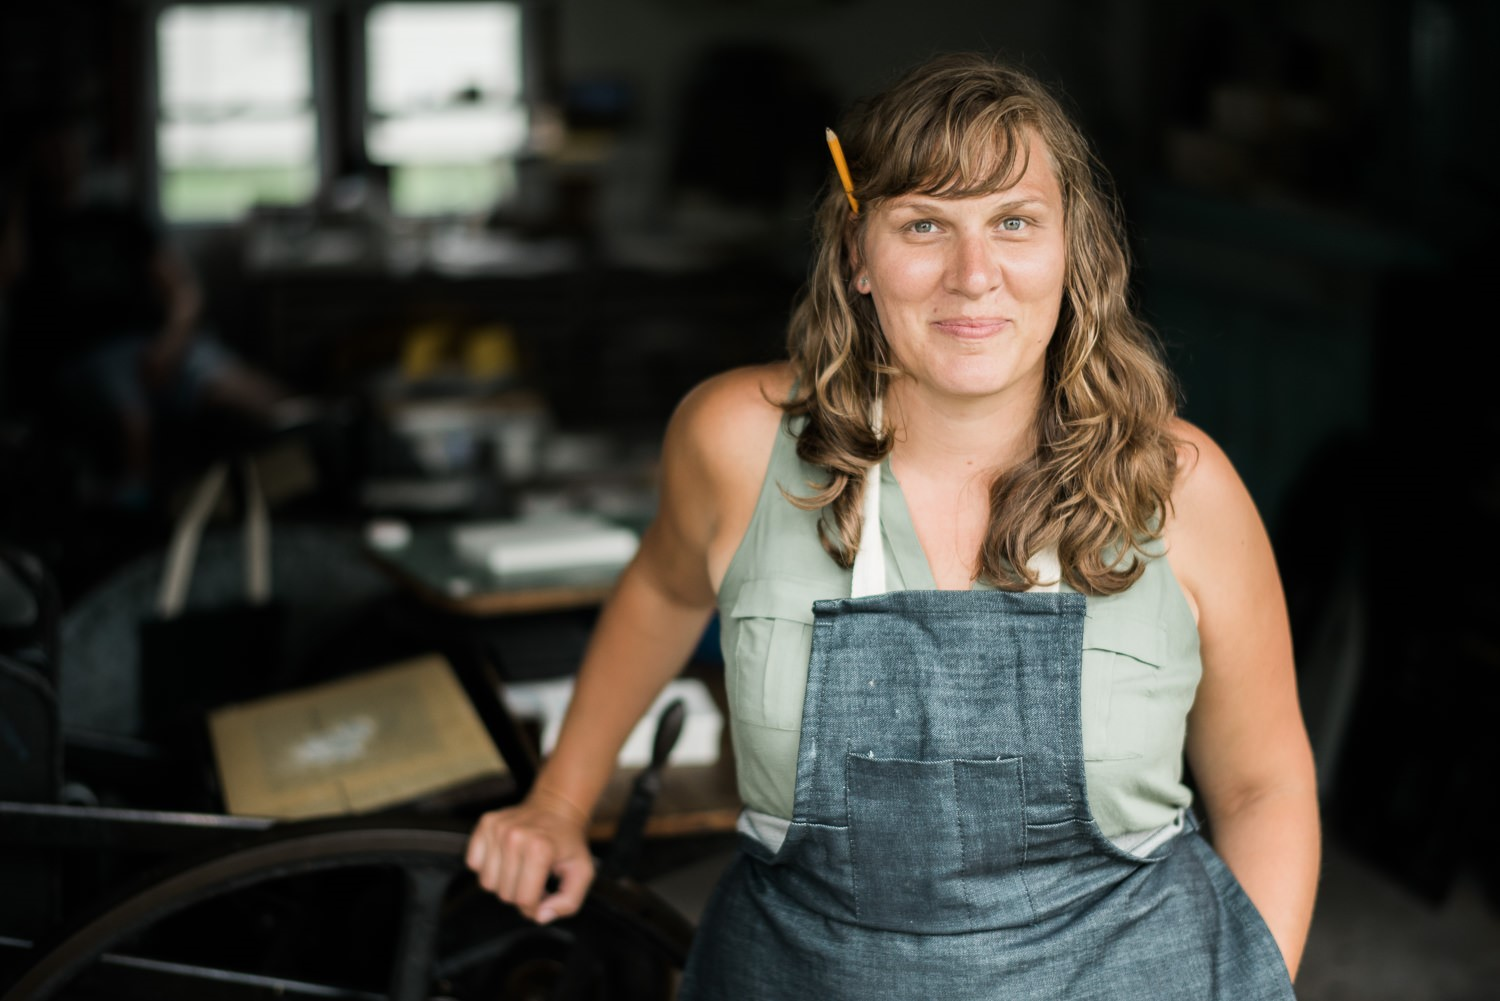 Goshen's first arts coordinator brings wealth of experience in design, building business